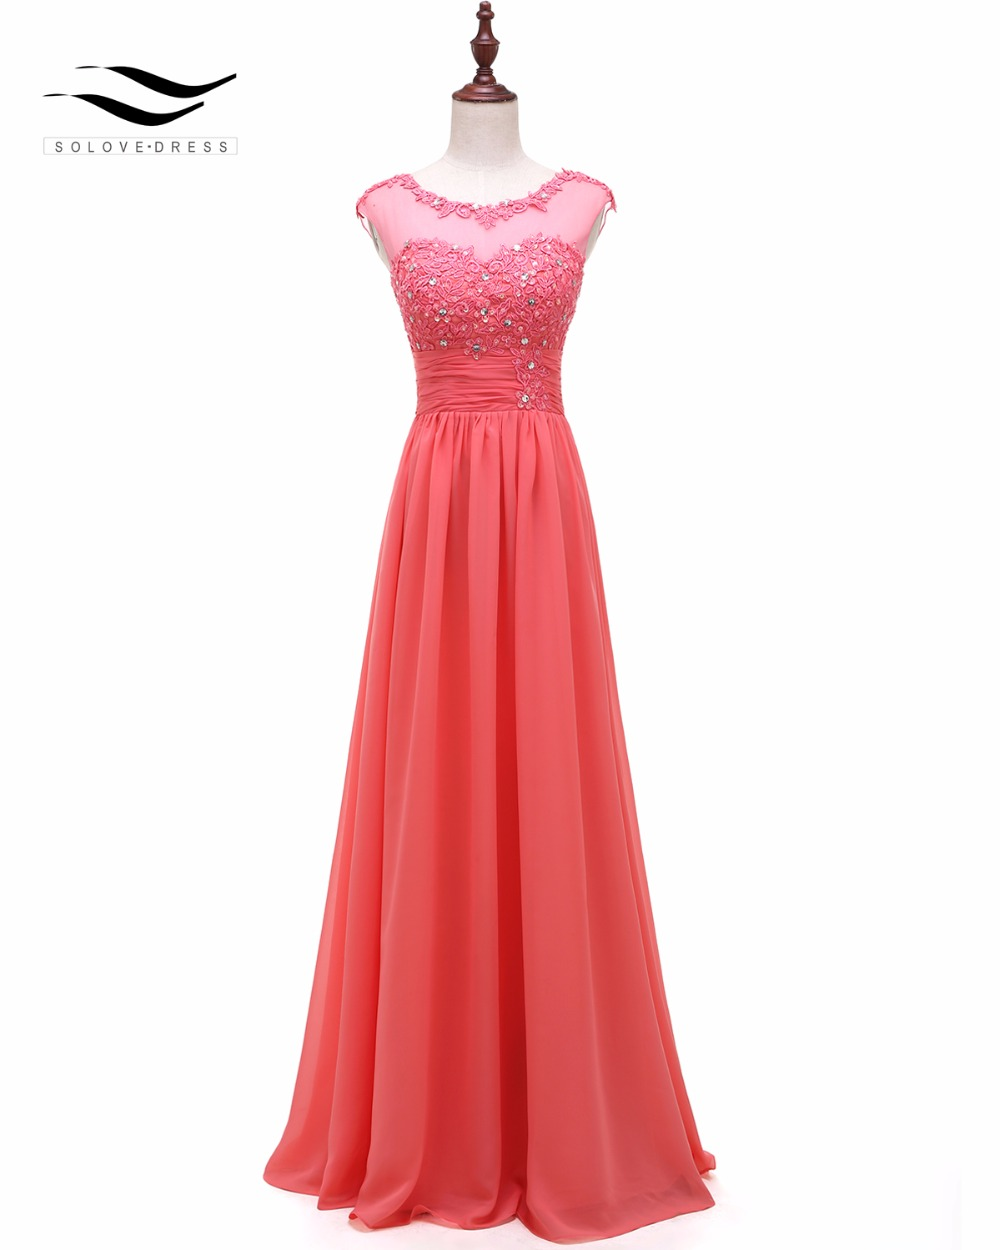 Solovedress Appliques Real Photos Cap Sleeves Beaded A Line Bridesmaid Dress Pleat Gown Elegant Vestidos De Fiesta PV20002